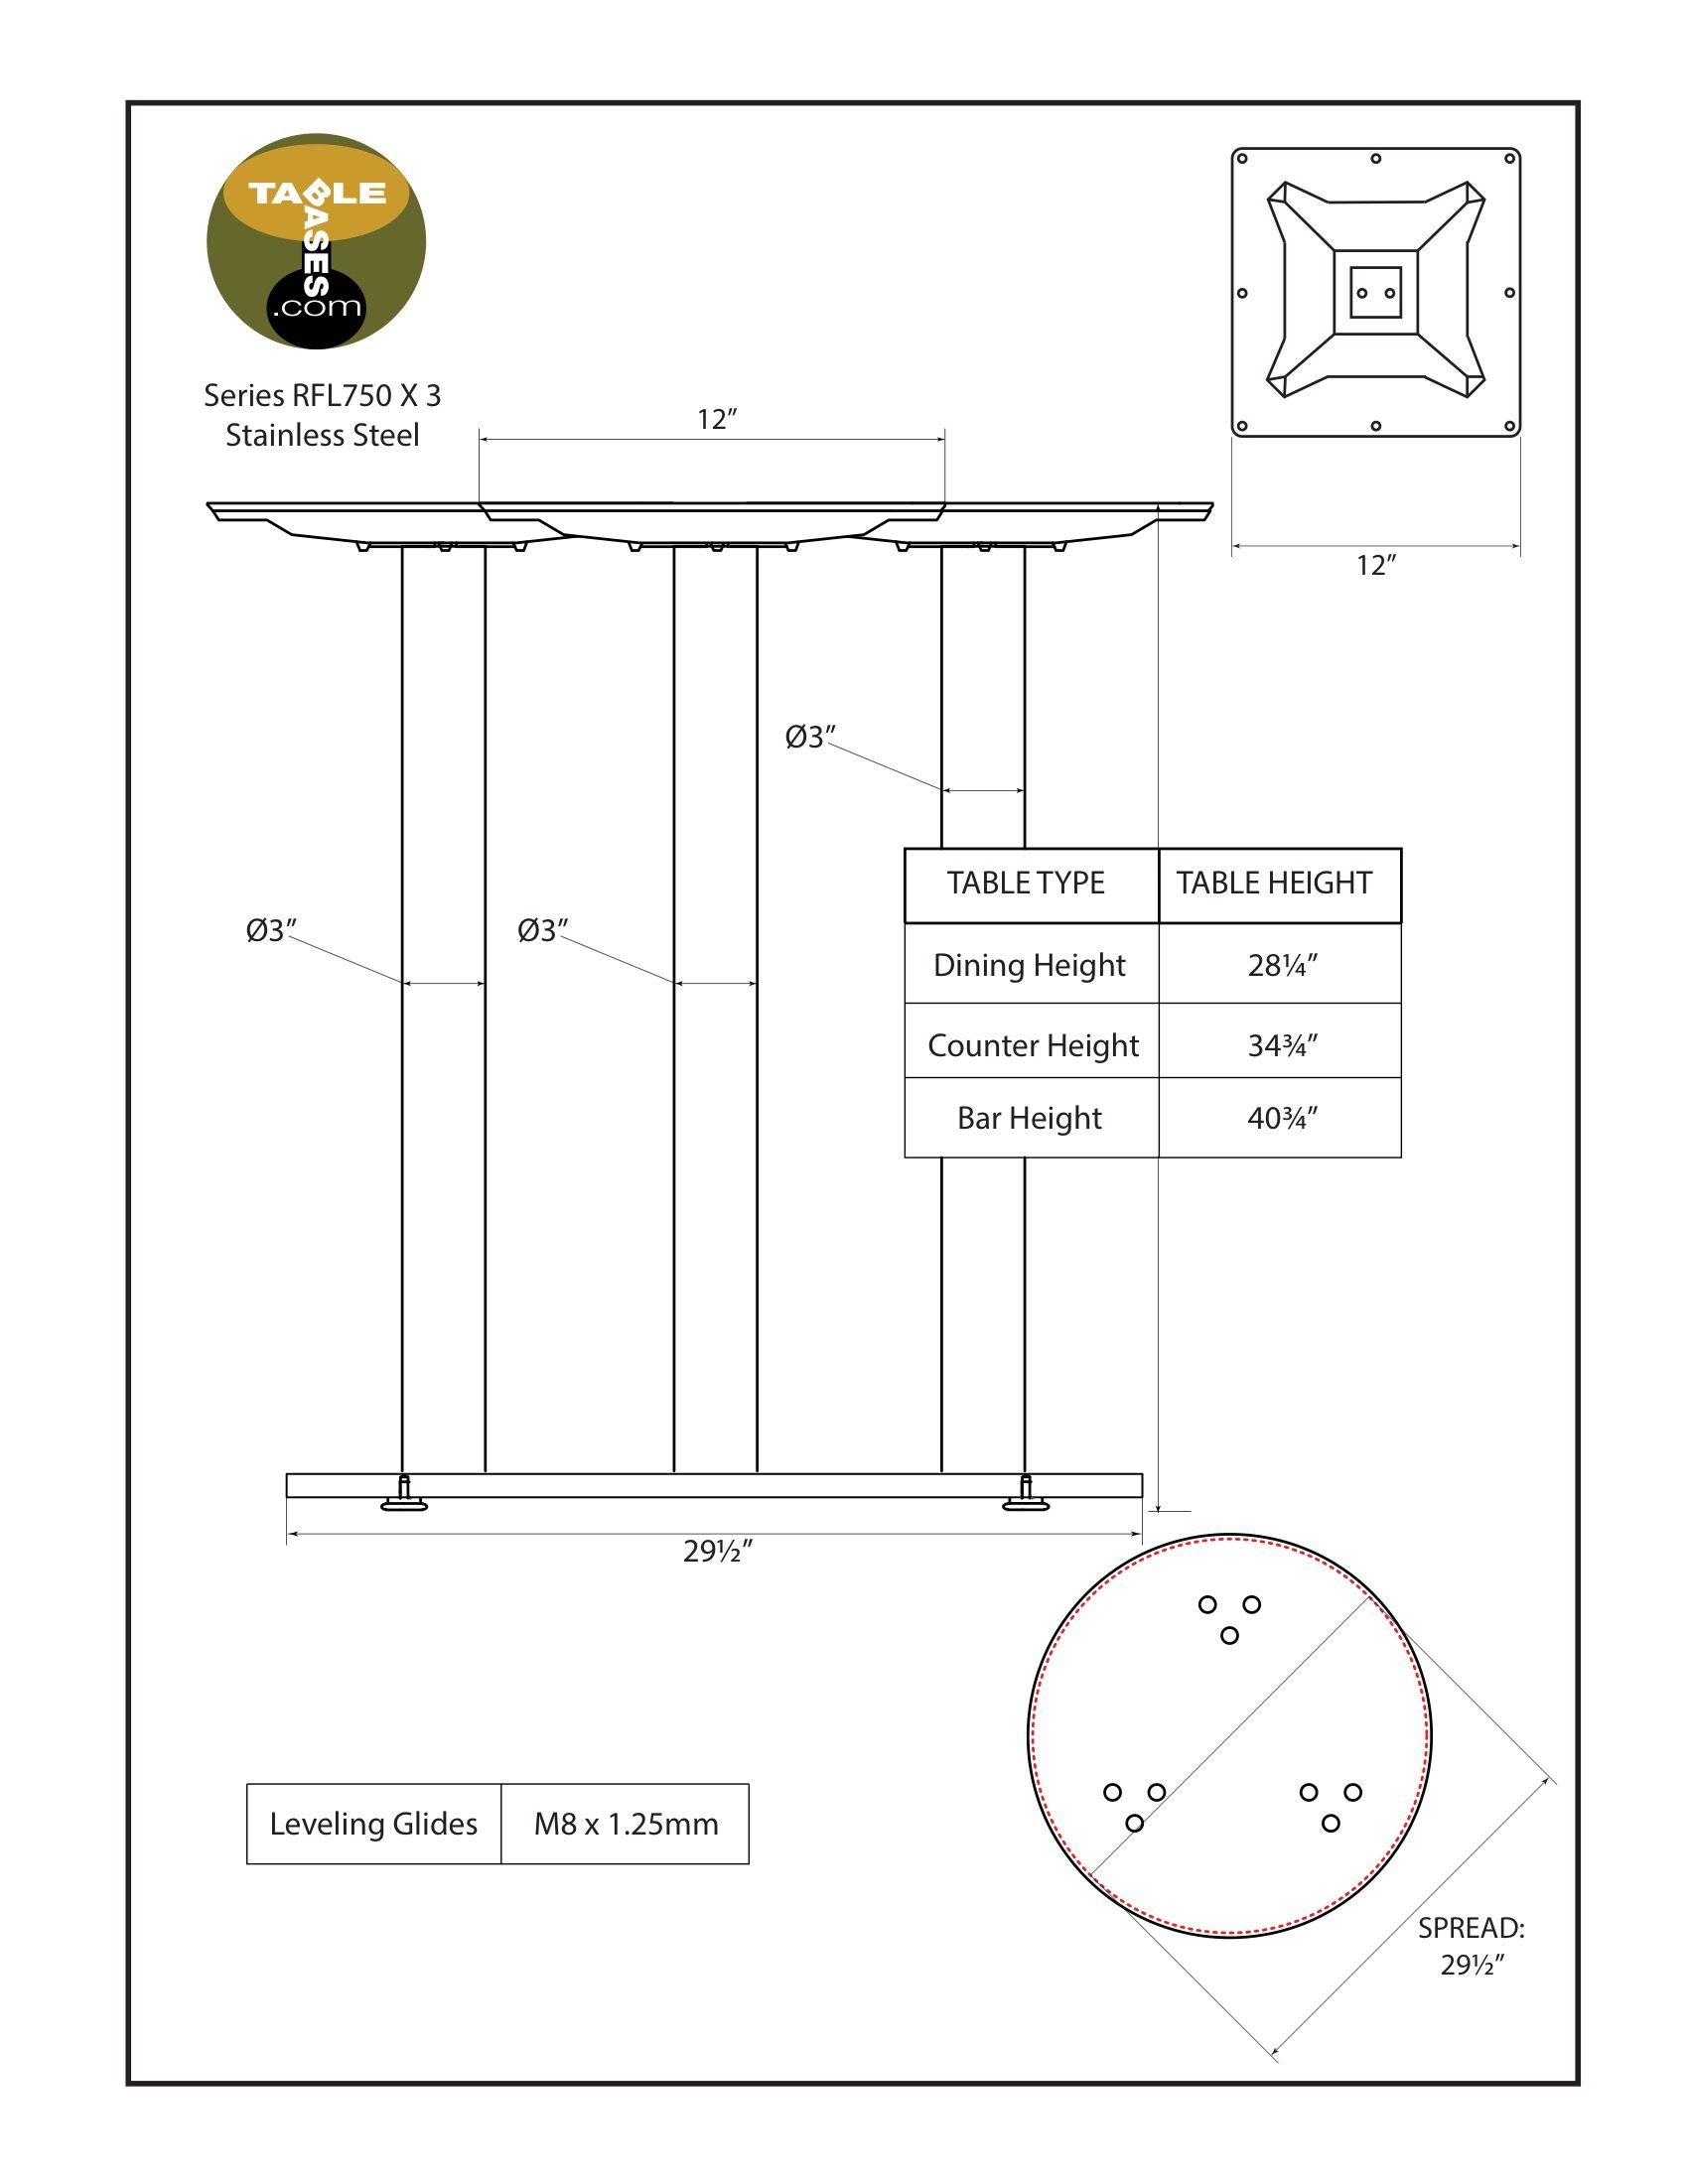 RFL750X3 Stainless Steel Table Base Specifications